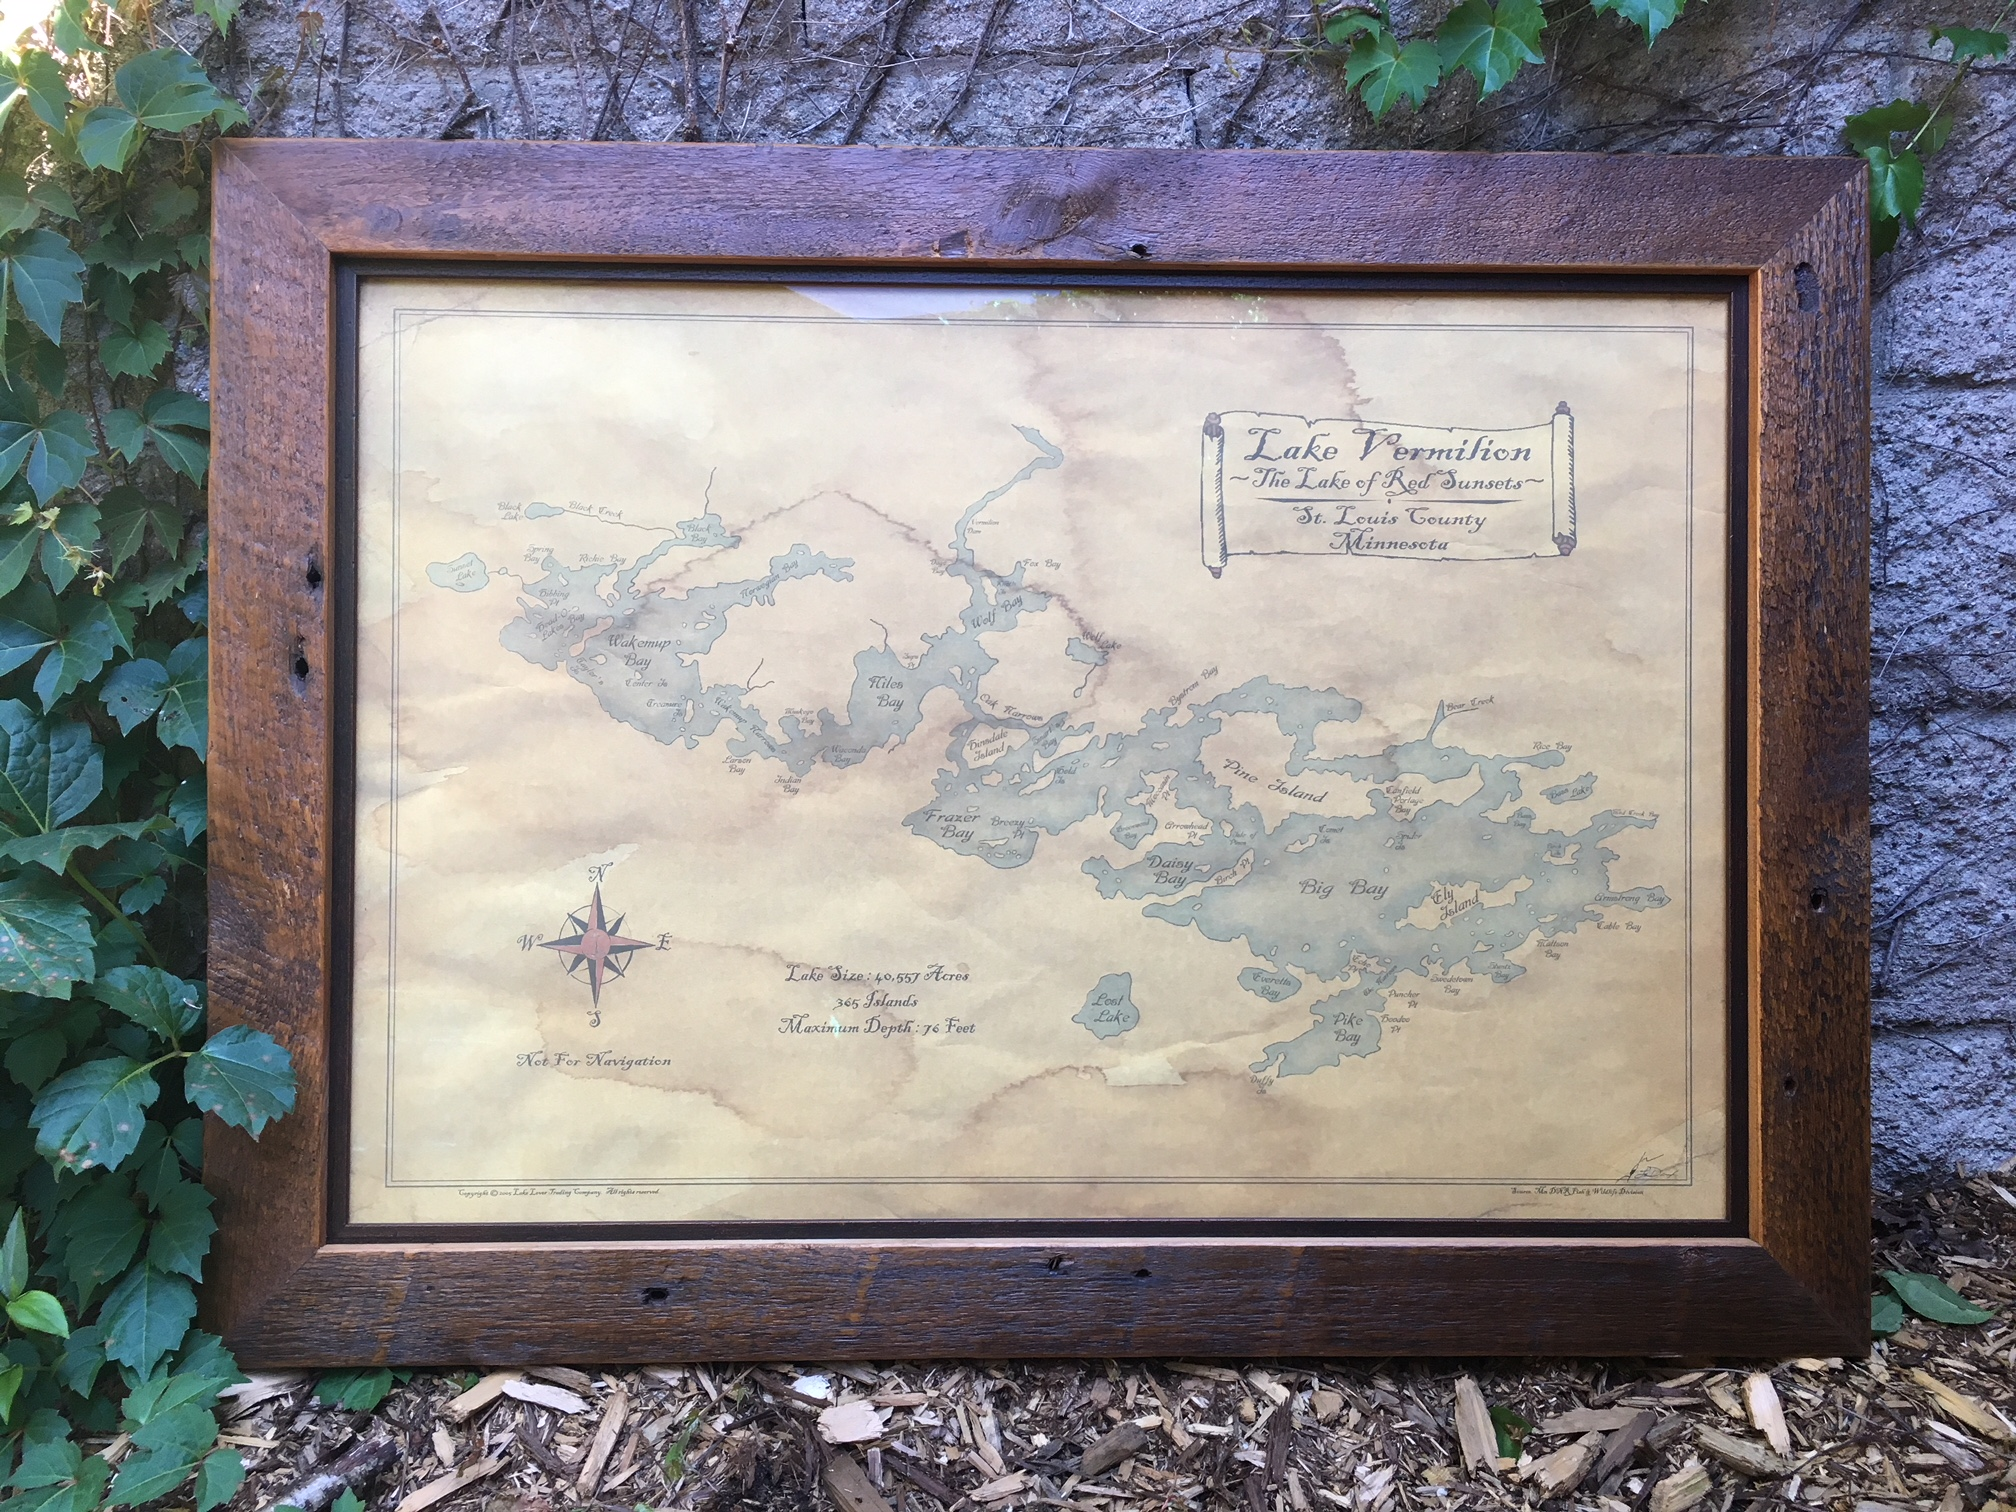 Reproduction of a vintage lake map framed in reclaimed wood with dark walnut insert.